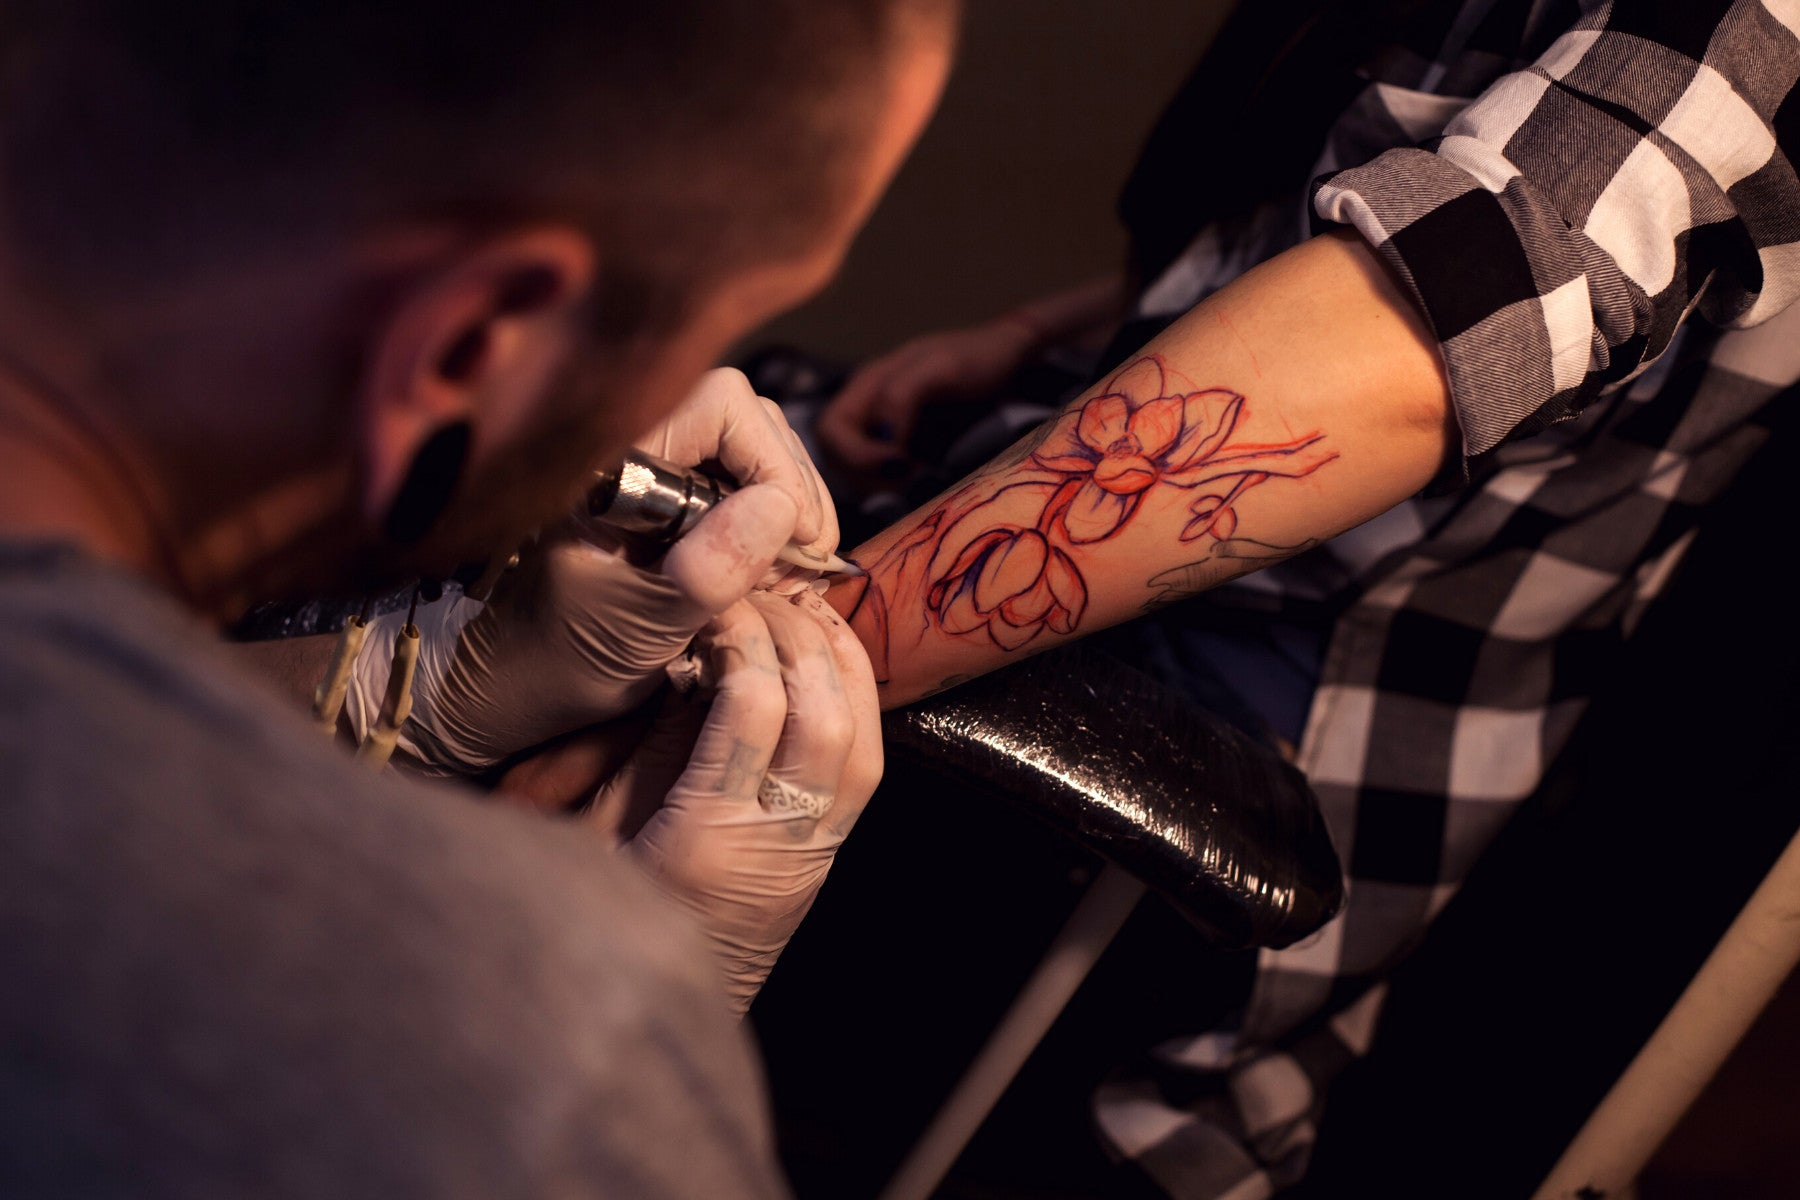 Male tattoo artist tattooing a large flower tattoo on a persons forearm